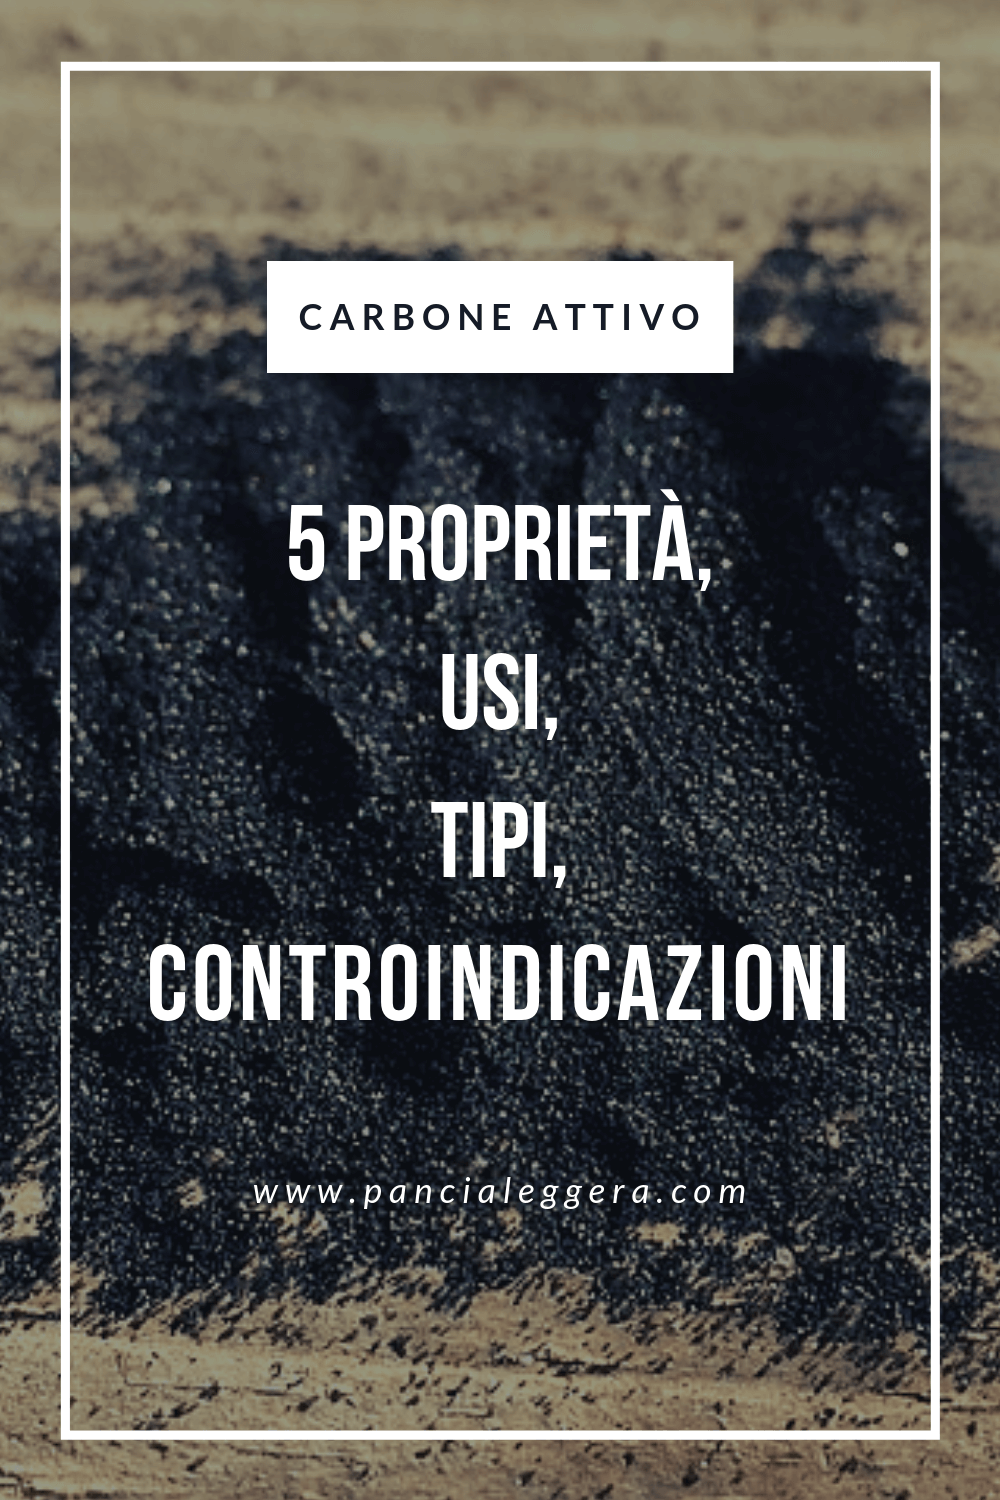 Carbone – rimedio naturale antico